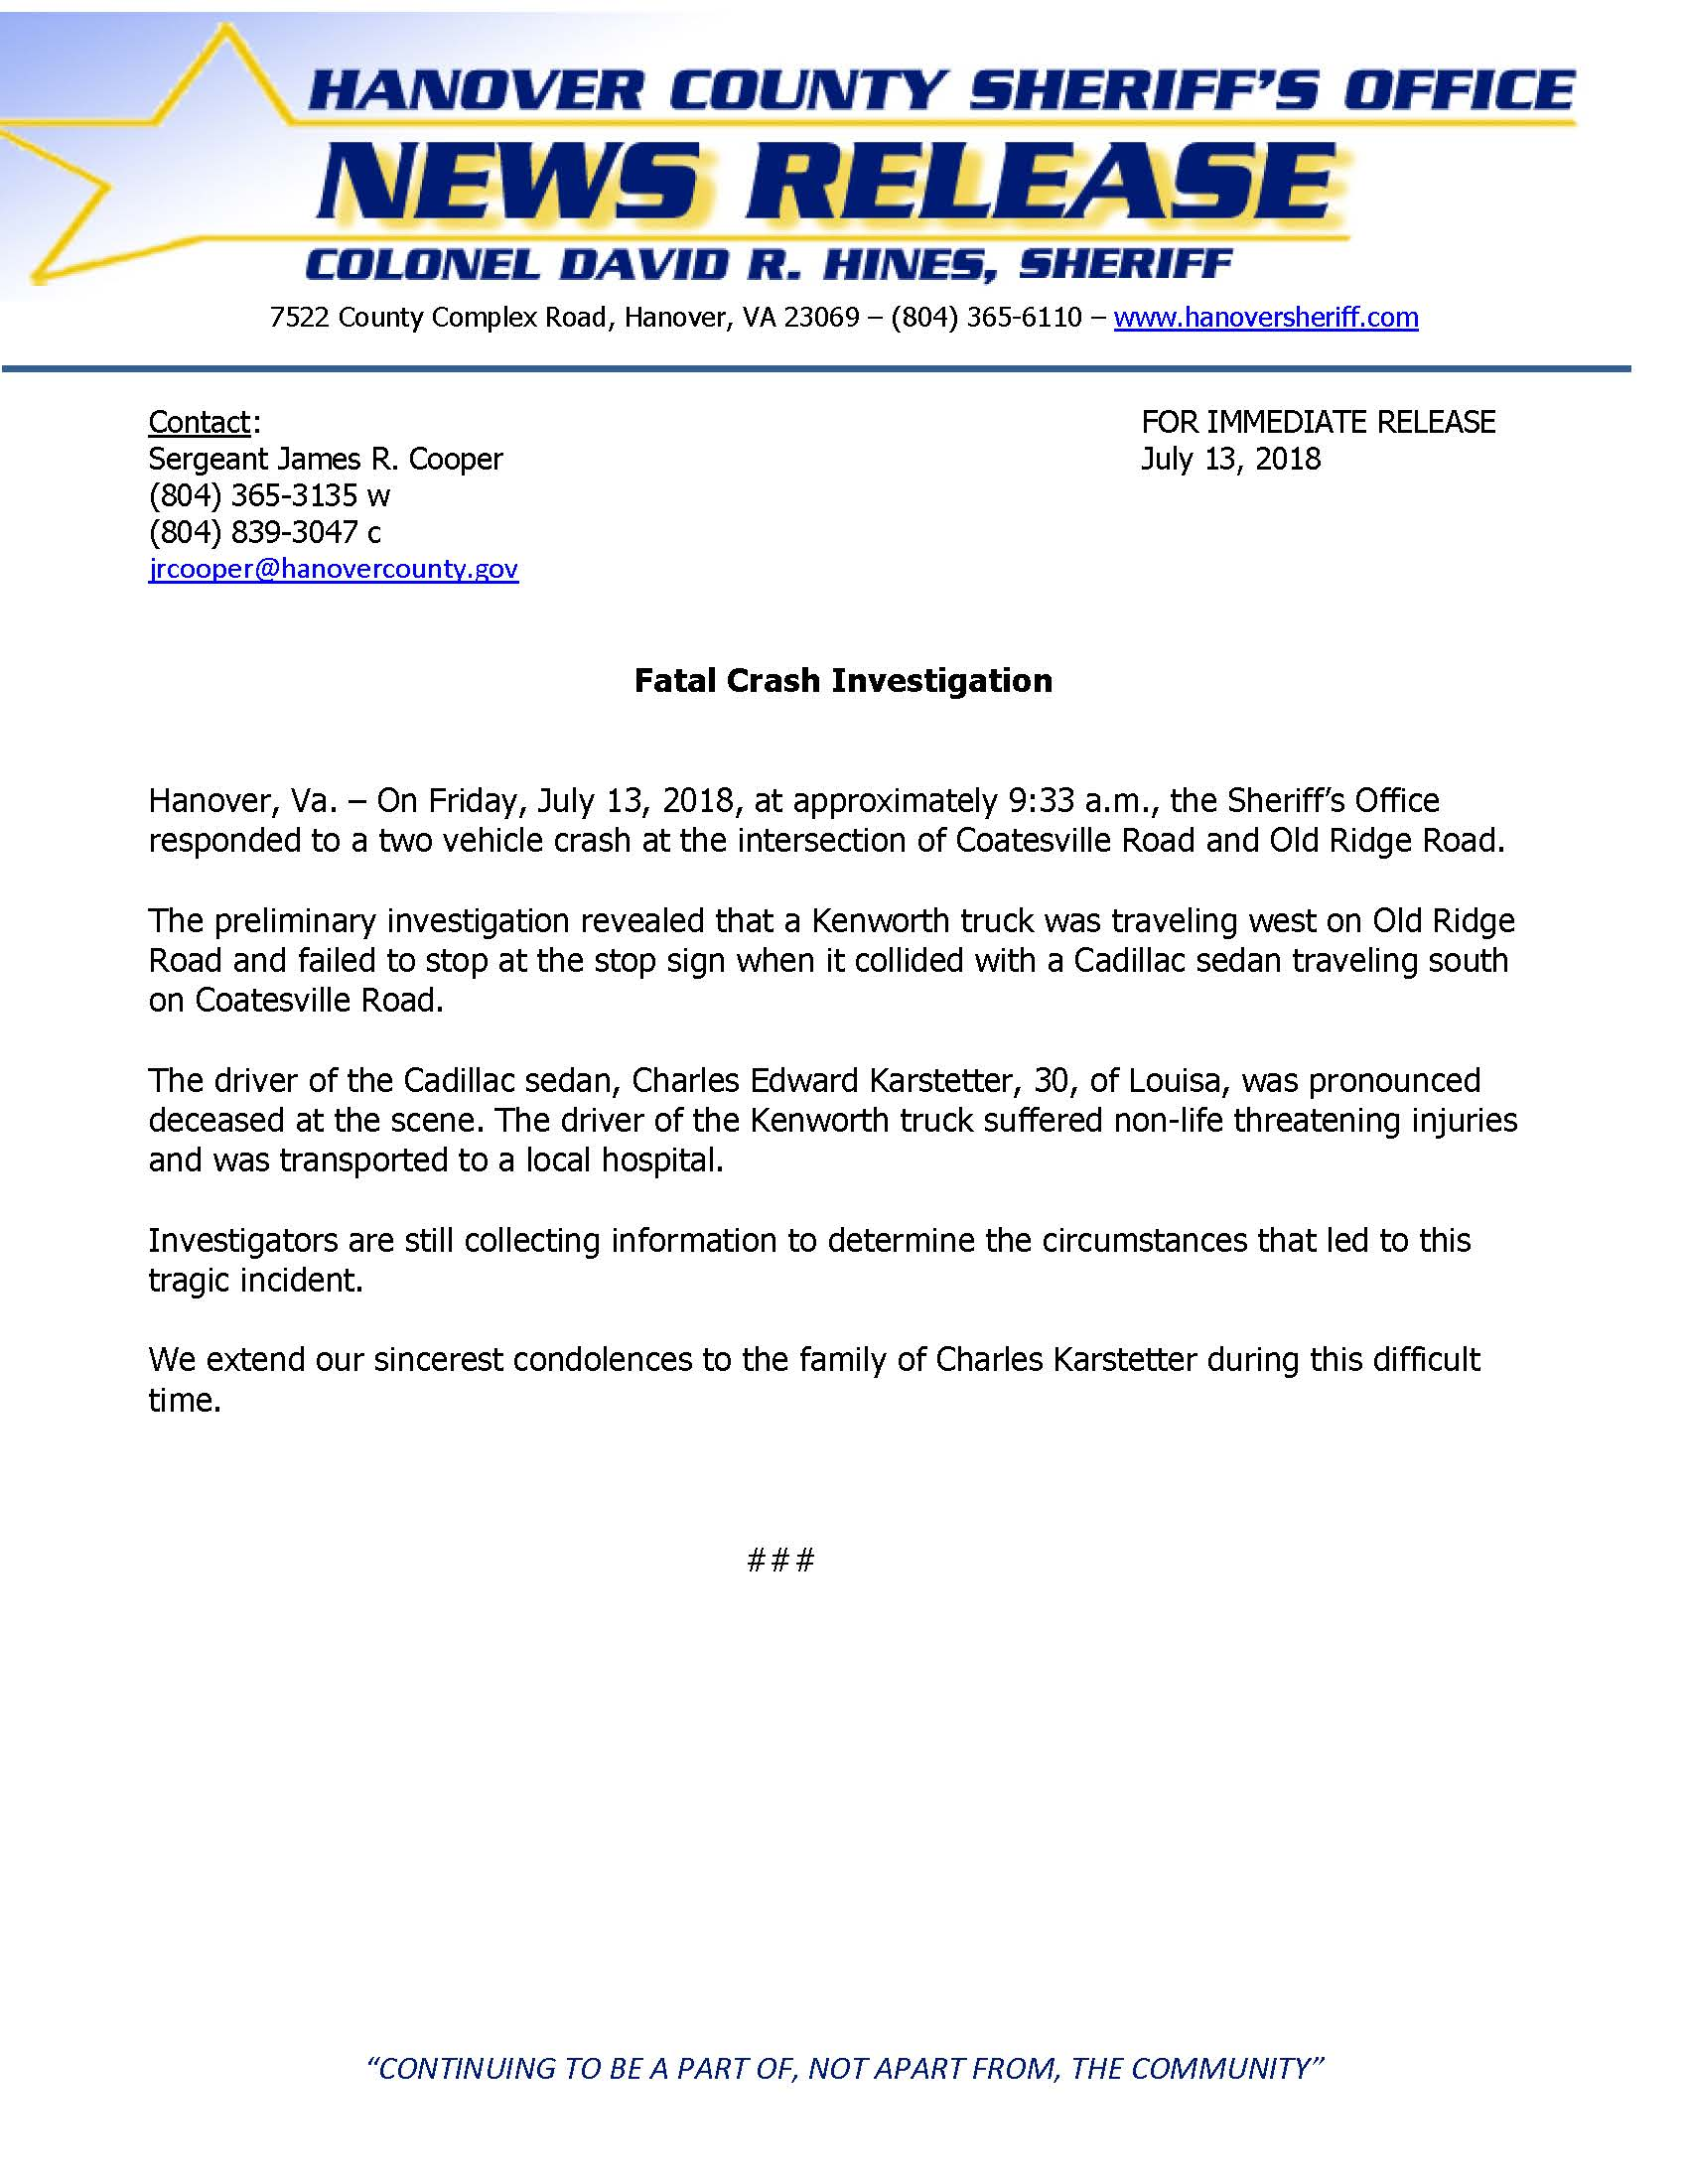 HCSO - Fatal Crash - Coatesville Road- July 13, 2018